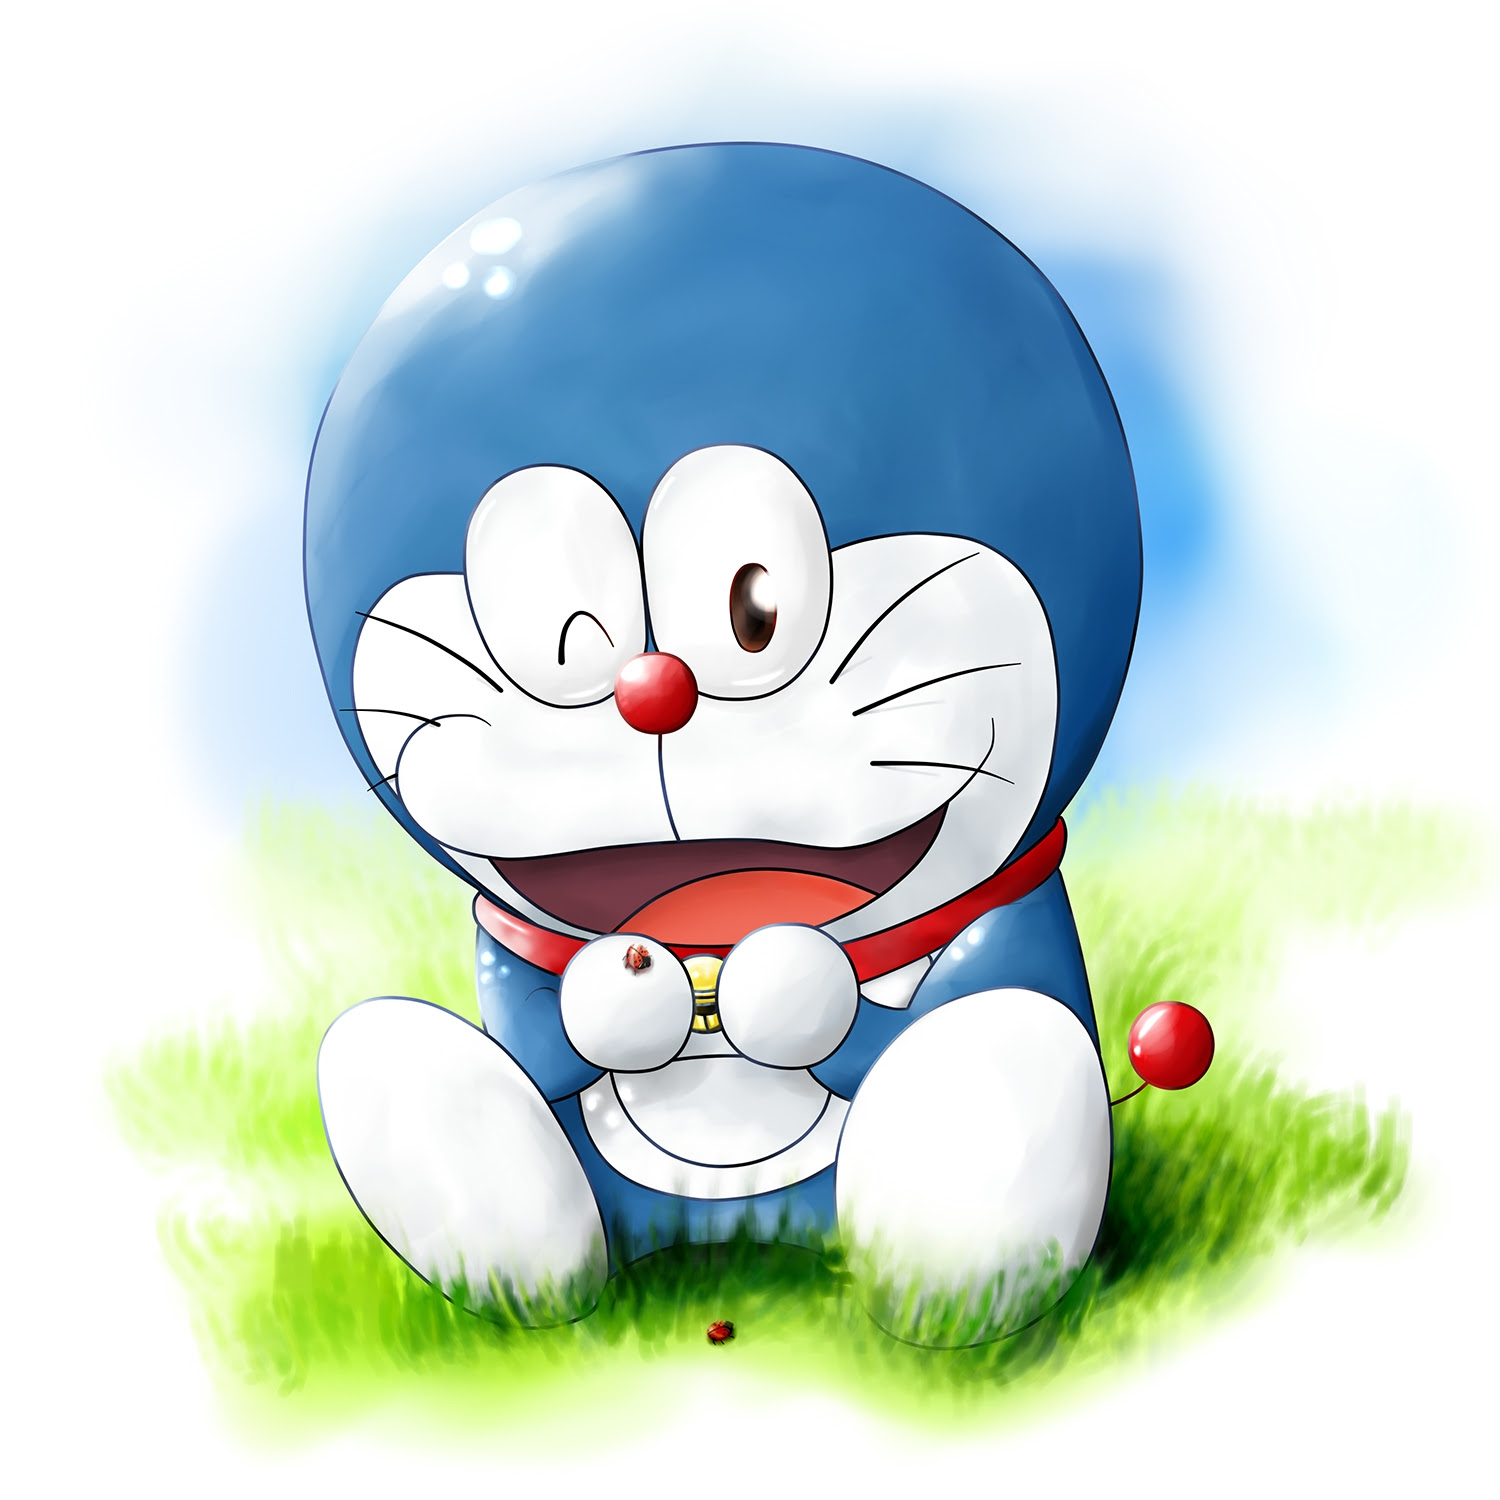 Doraemon Mod Requests Ideas For Mods Minecraft Mods Mapping And Modding Java Edition